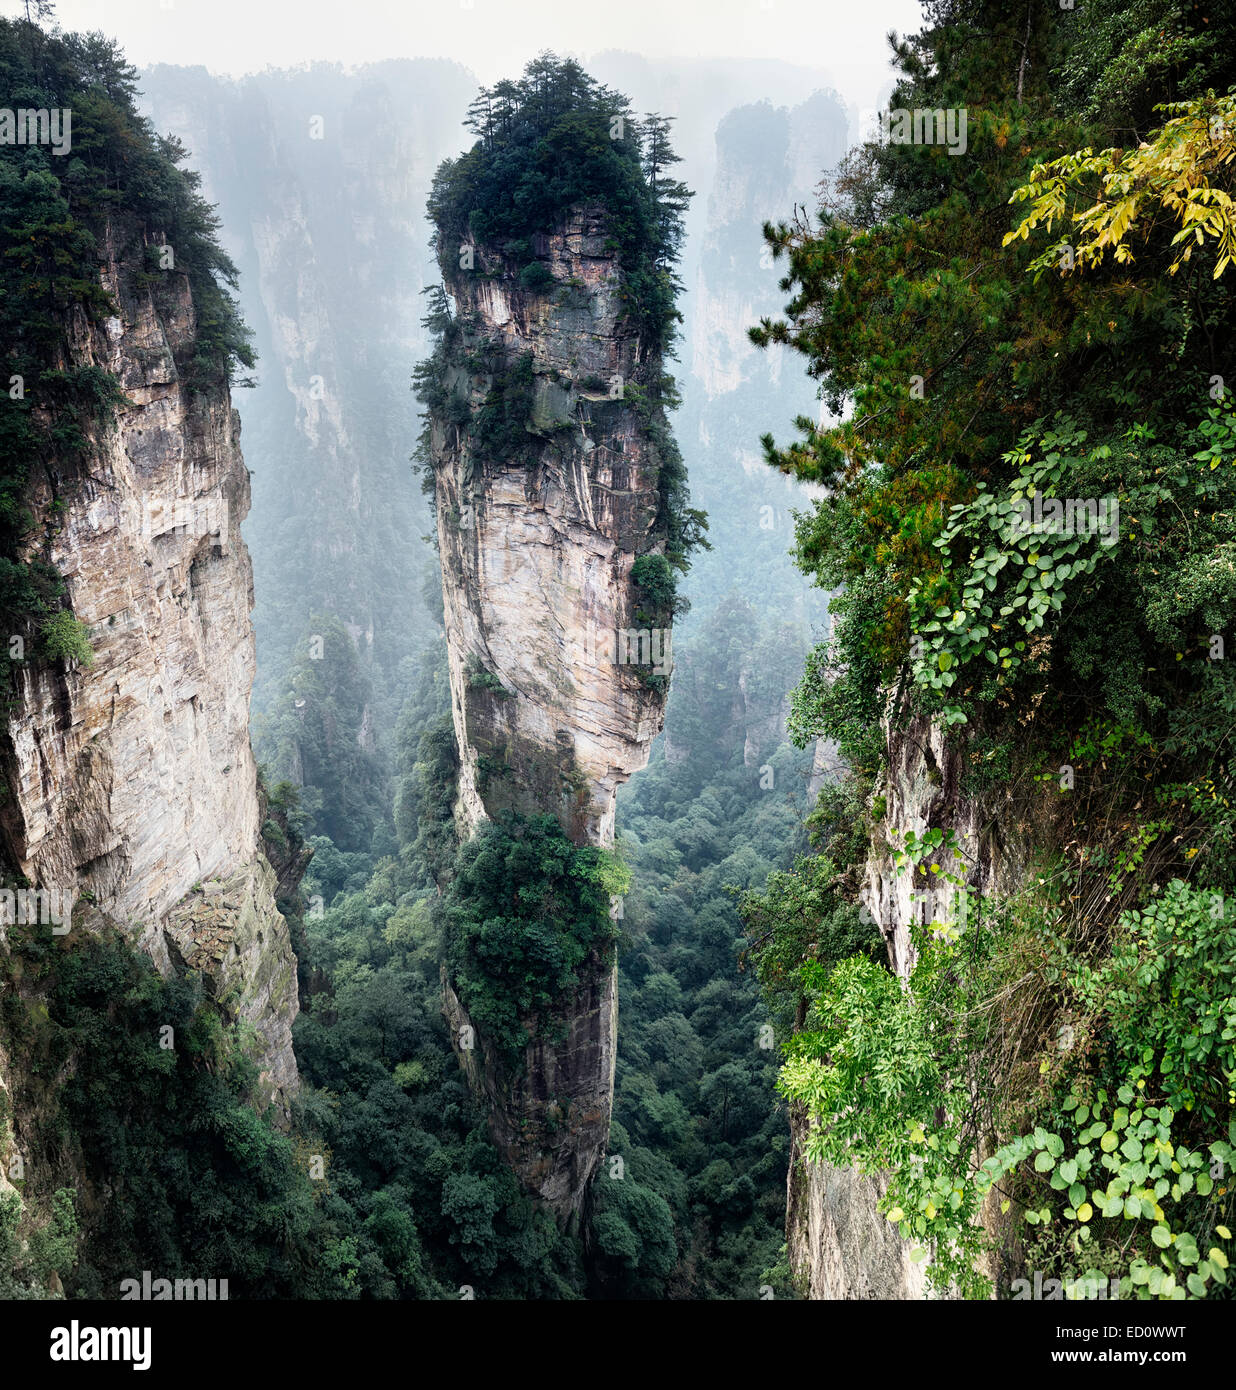 Mountain spire at Zhangjiajie National Forest Park, Zhangjiajie, Hunan, China - Stock Image